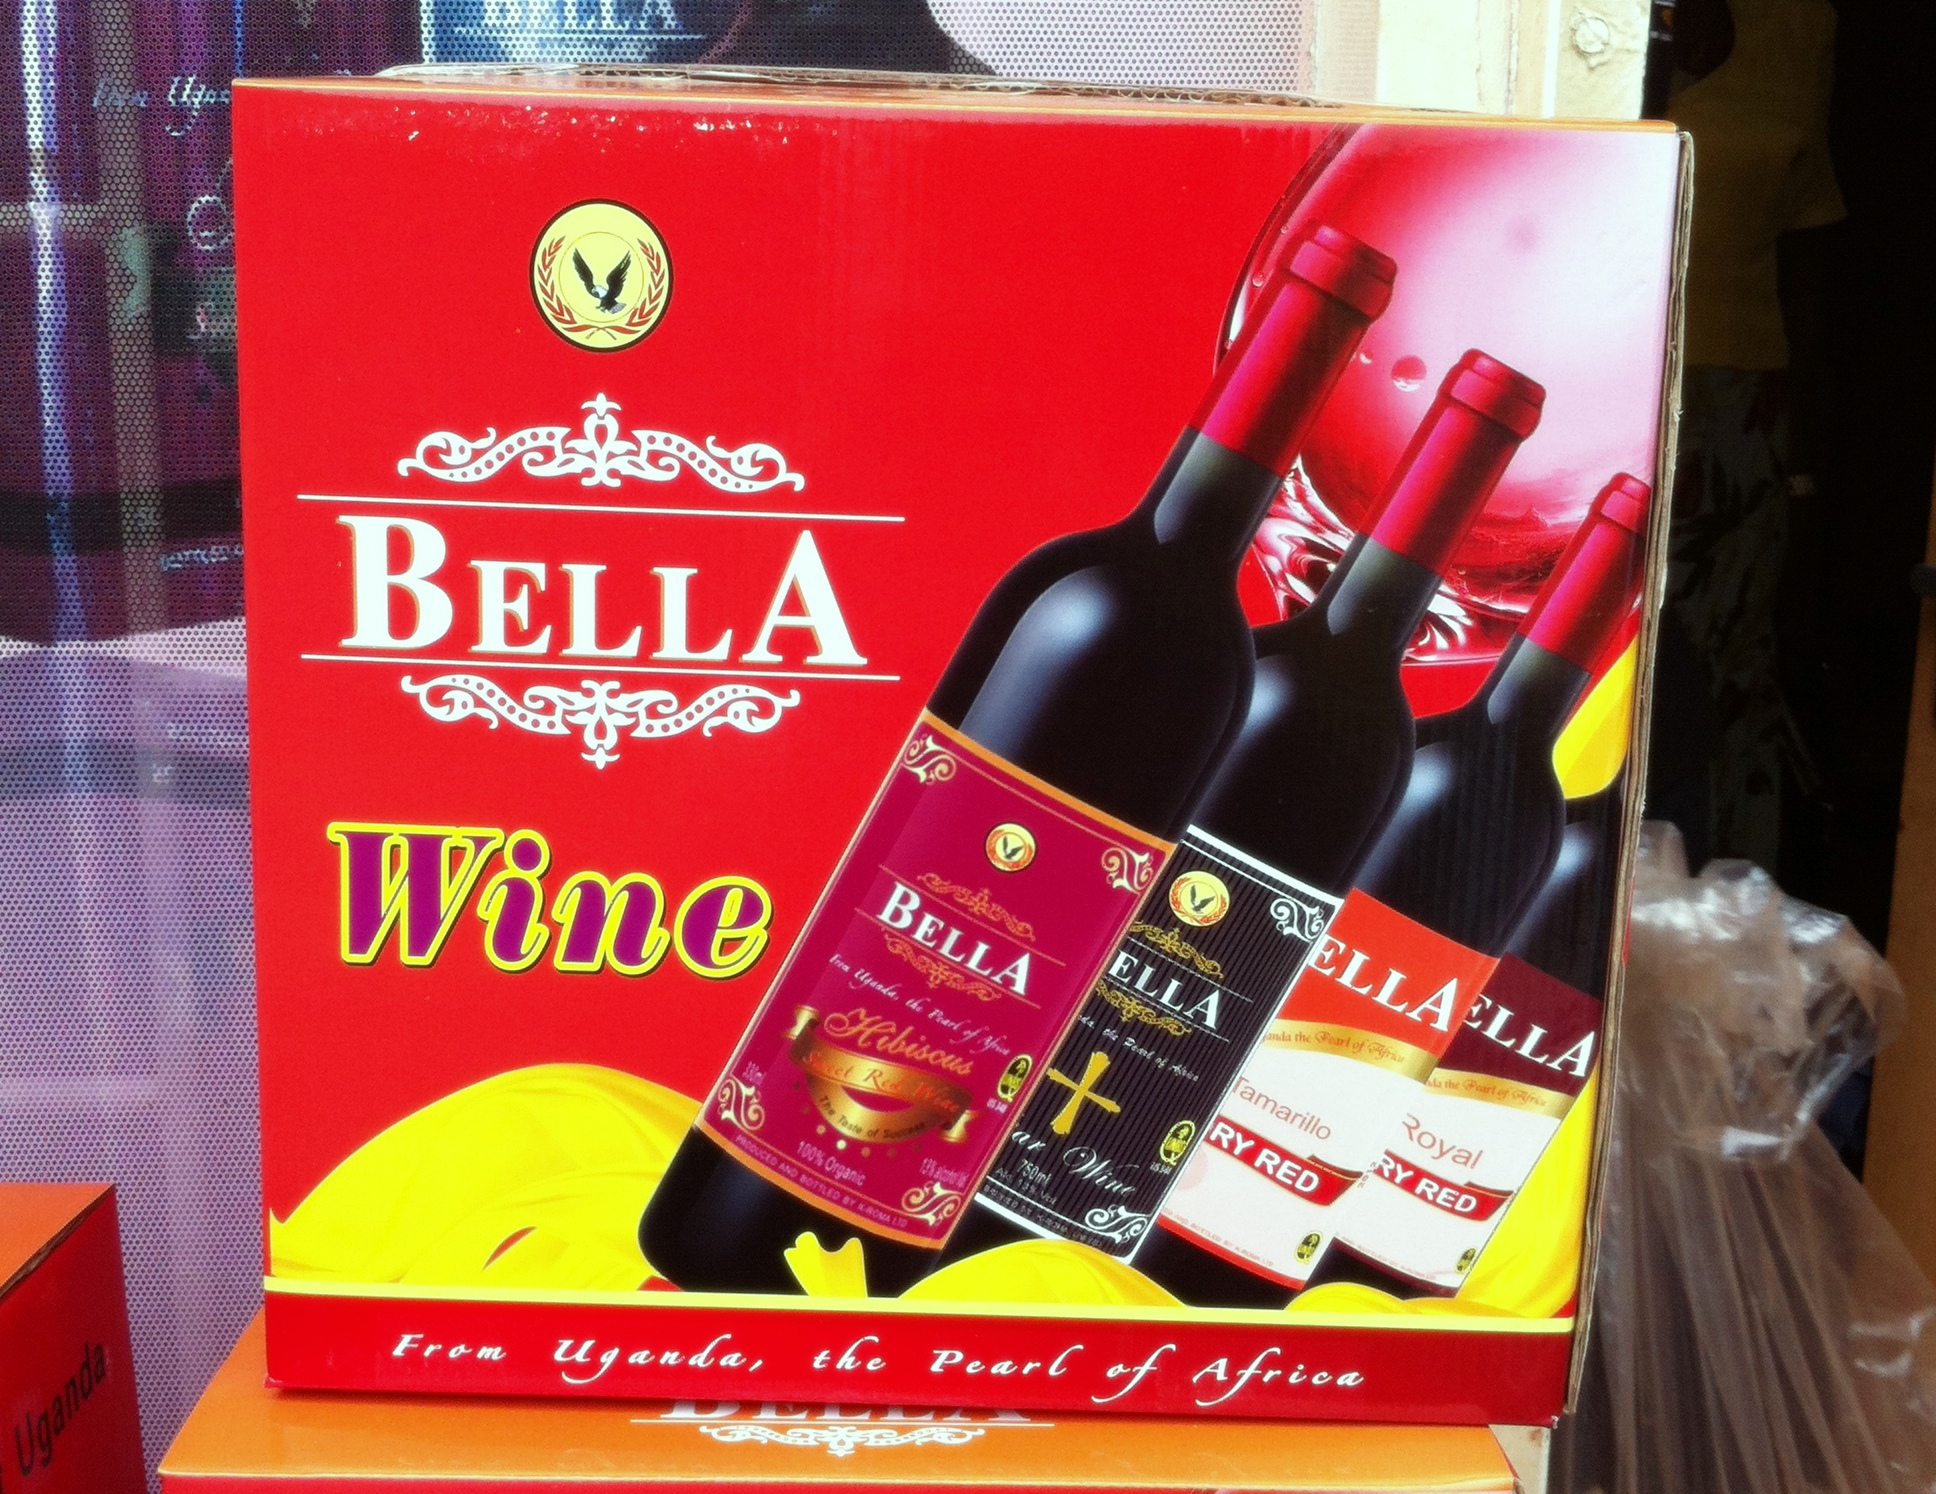 Bella Wine, K-Roma's major brand.